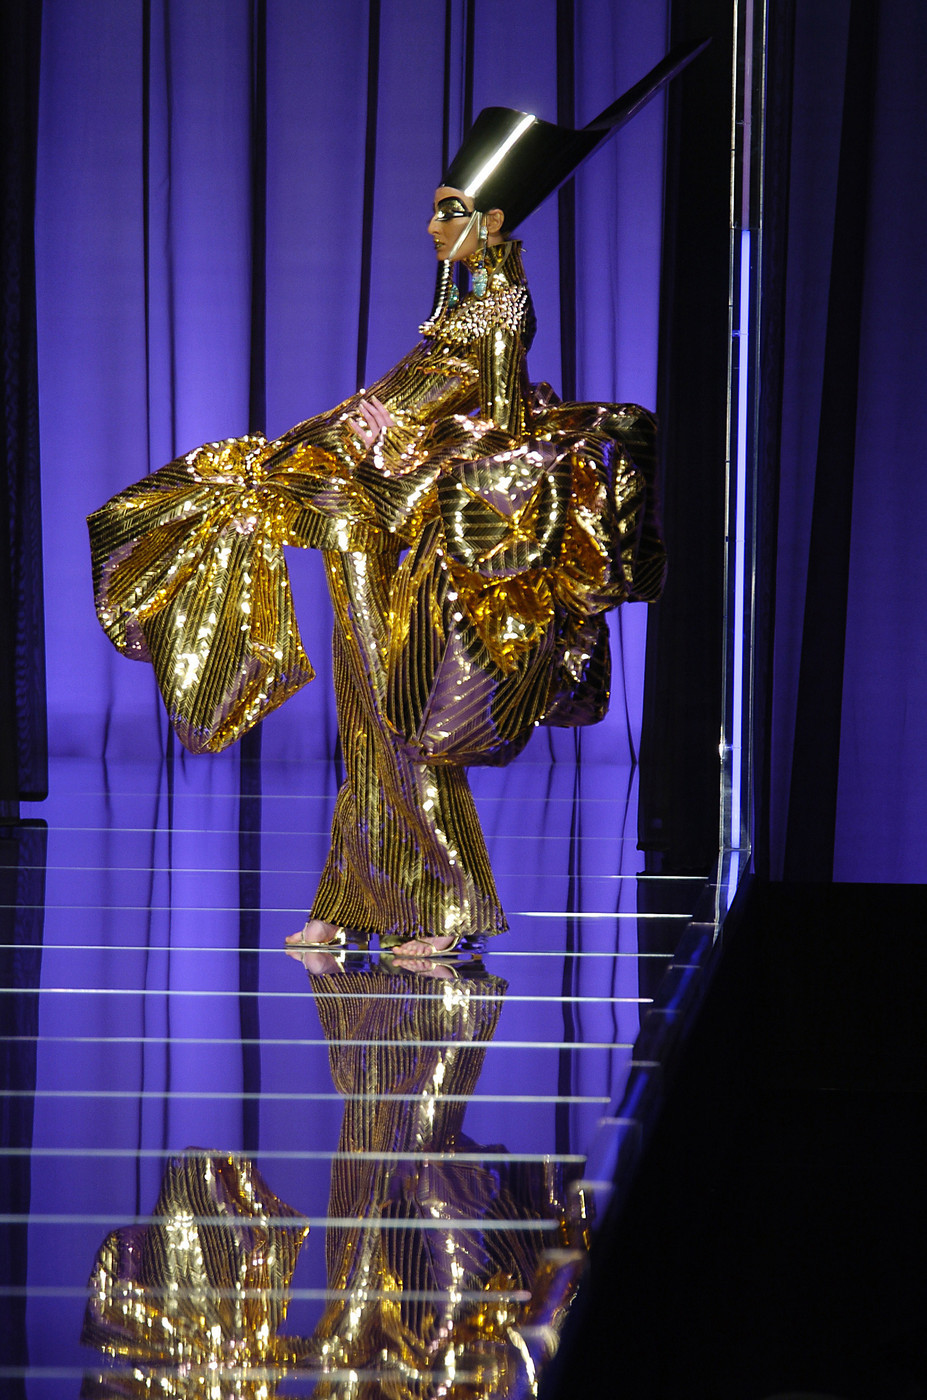 John Galliano for Christian Dior Spring Summer 2004 Haute Couture